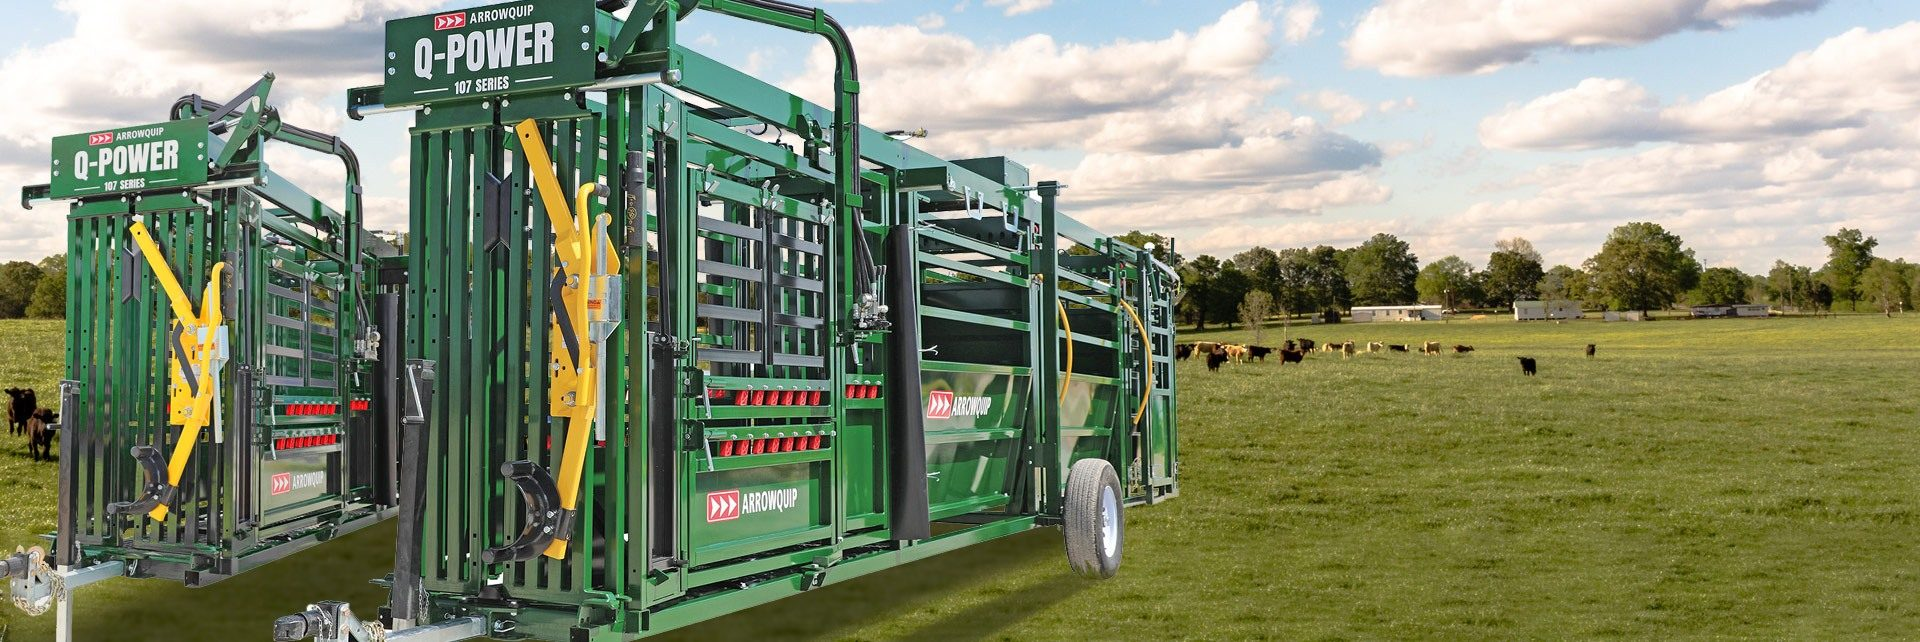 Hydraulic portable cattle chute, alley and tub in a field